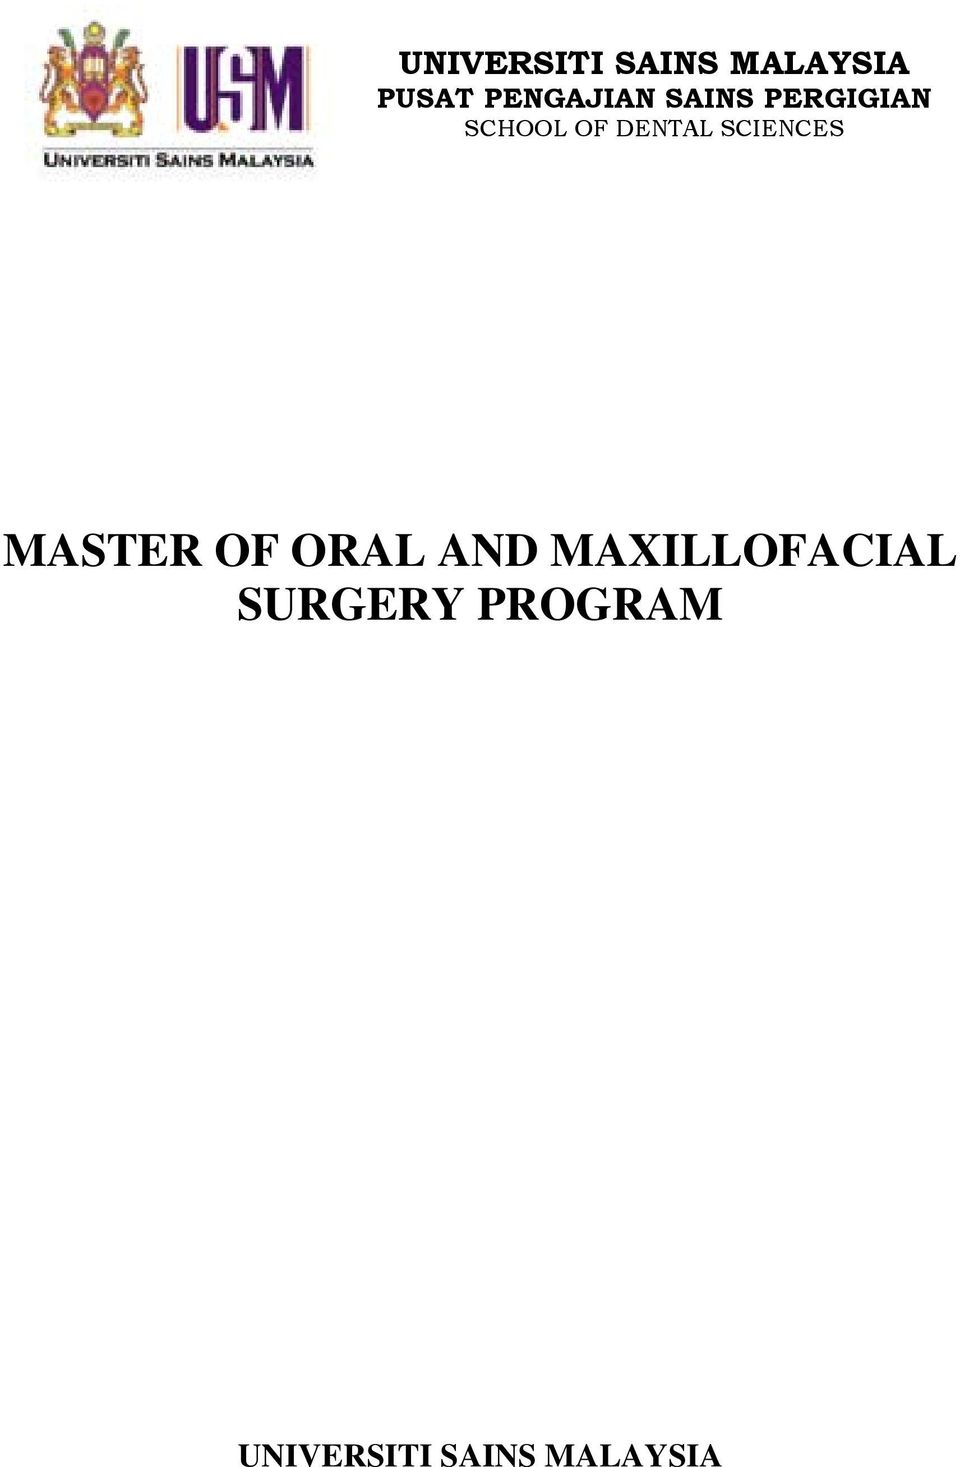 DENTAL SCIENCES MASTER OF ORAL AND